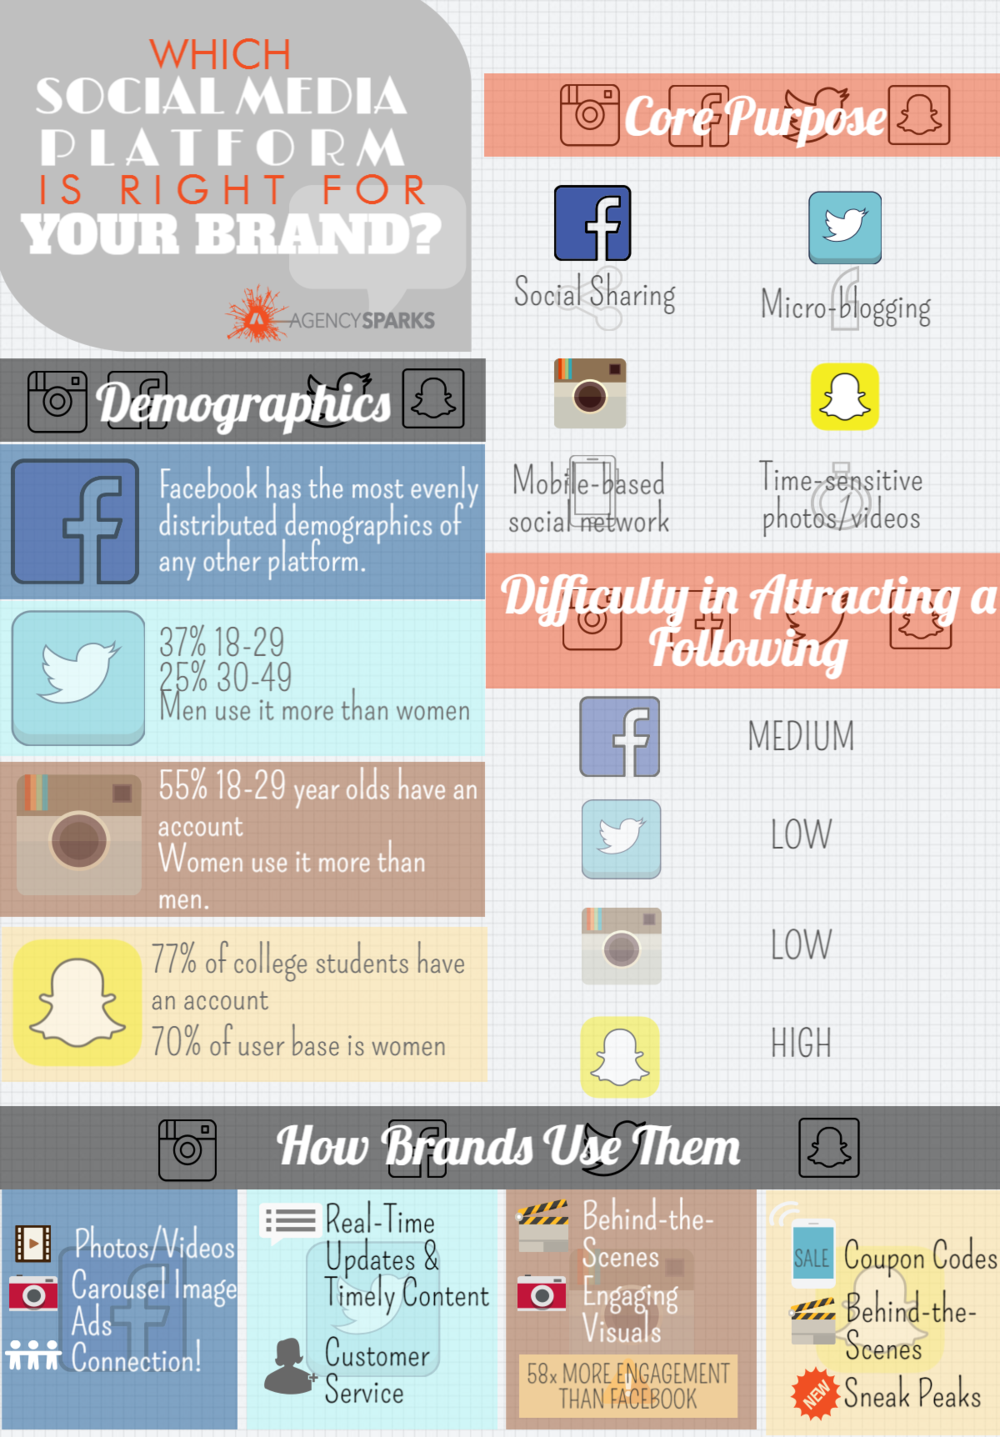 Which social media platform is right for your brand? - Infographic